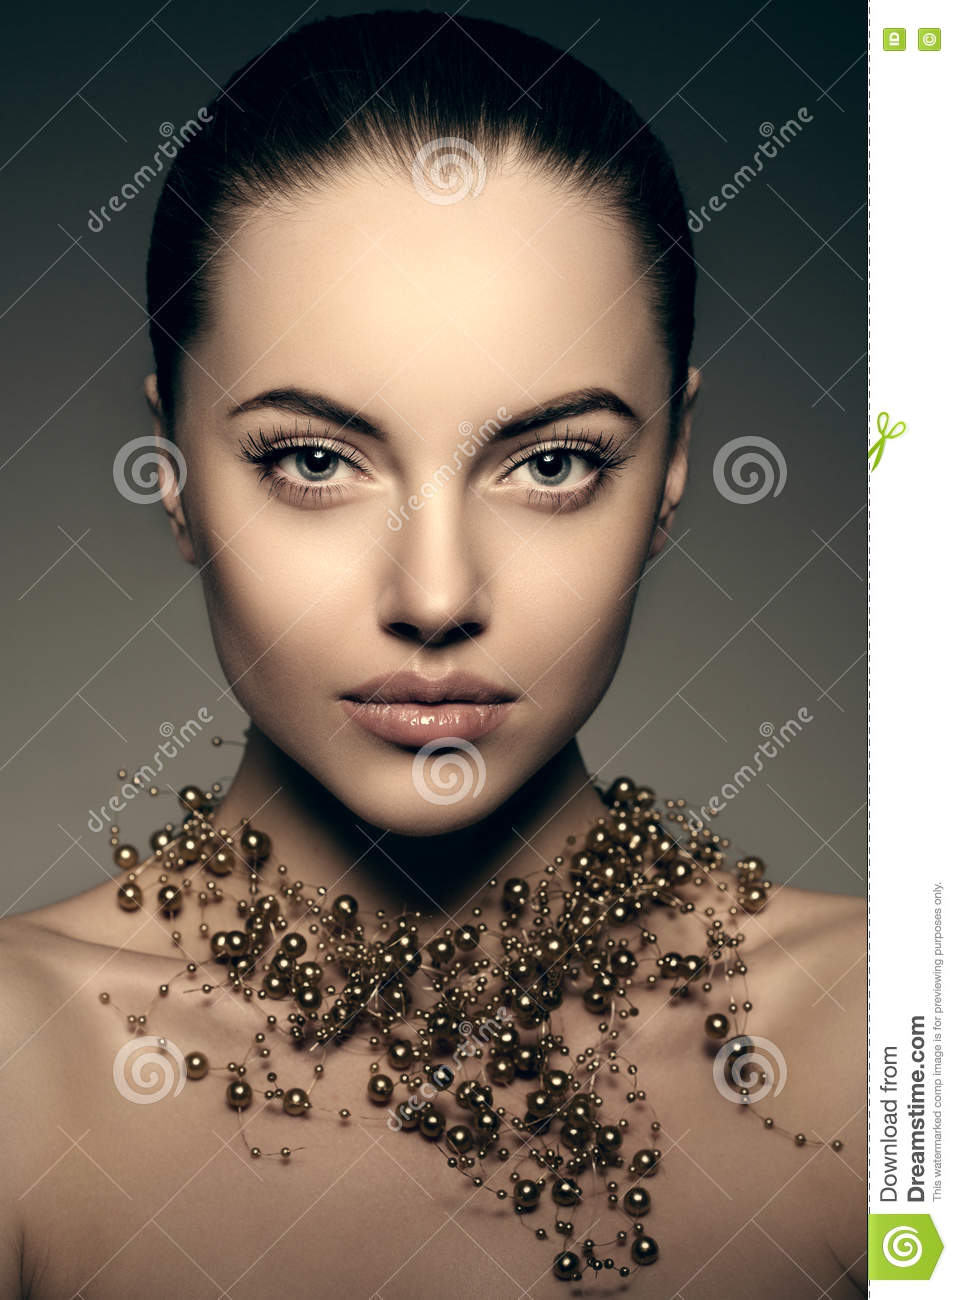 Vogue High Fashion Royalty Free Stock Image 28134256